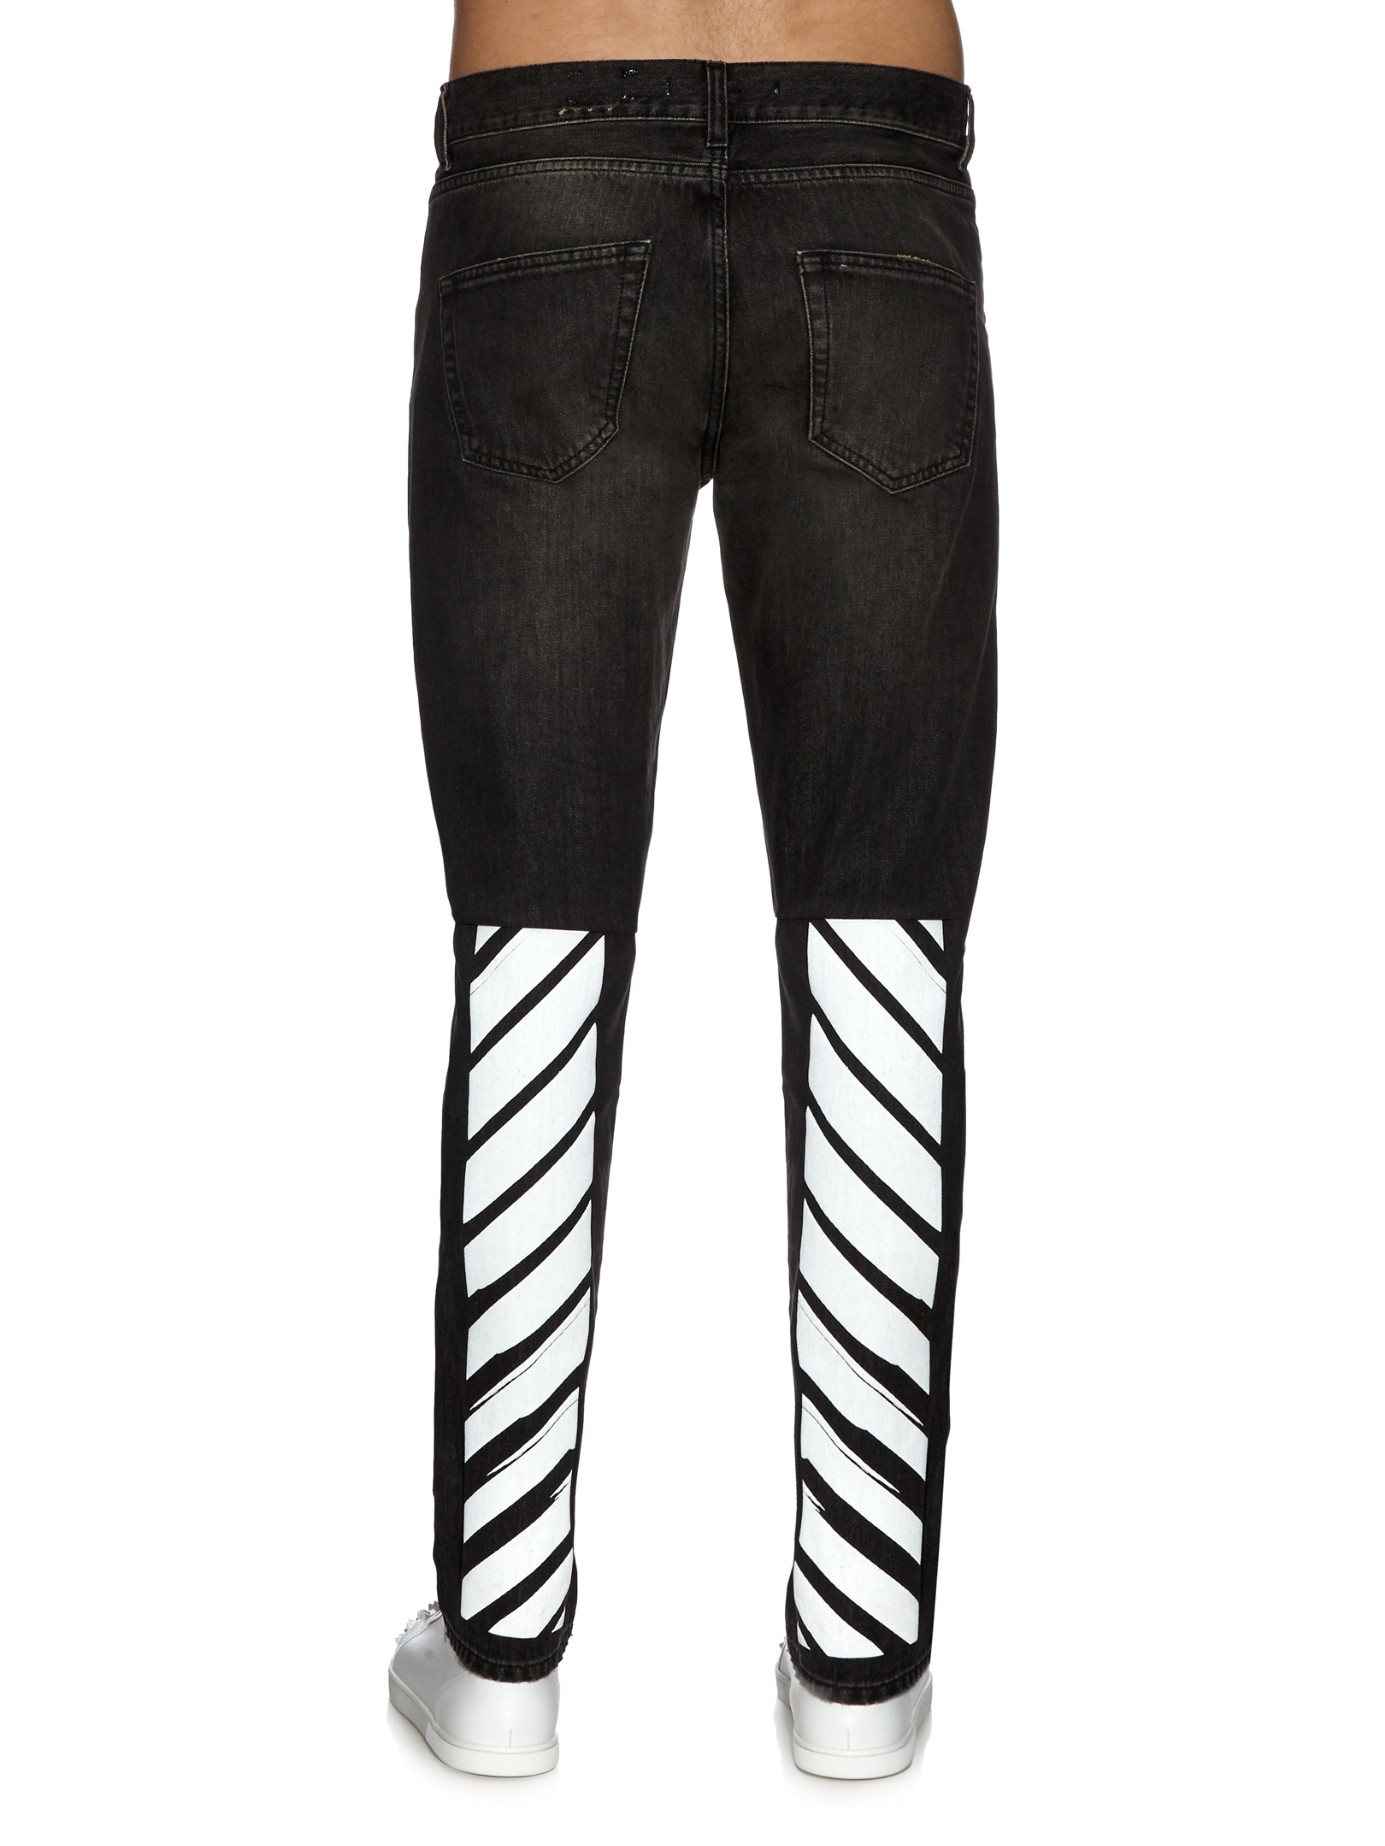 Off-white c/o virgil abloh Distressed Skinny Jeans in Black for ...